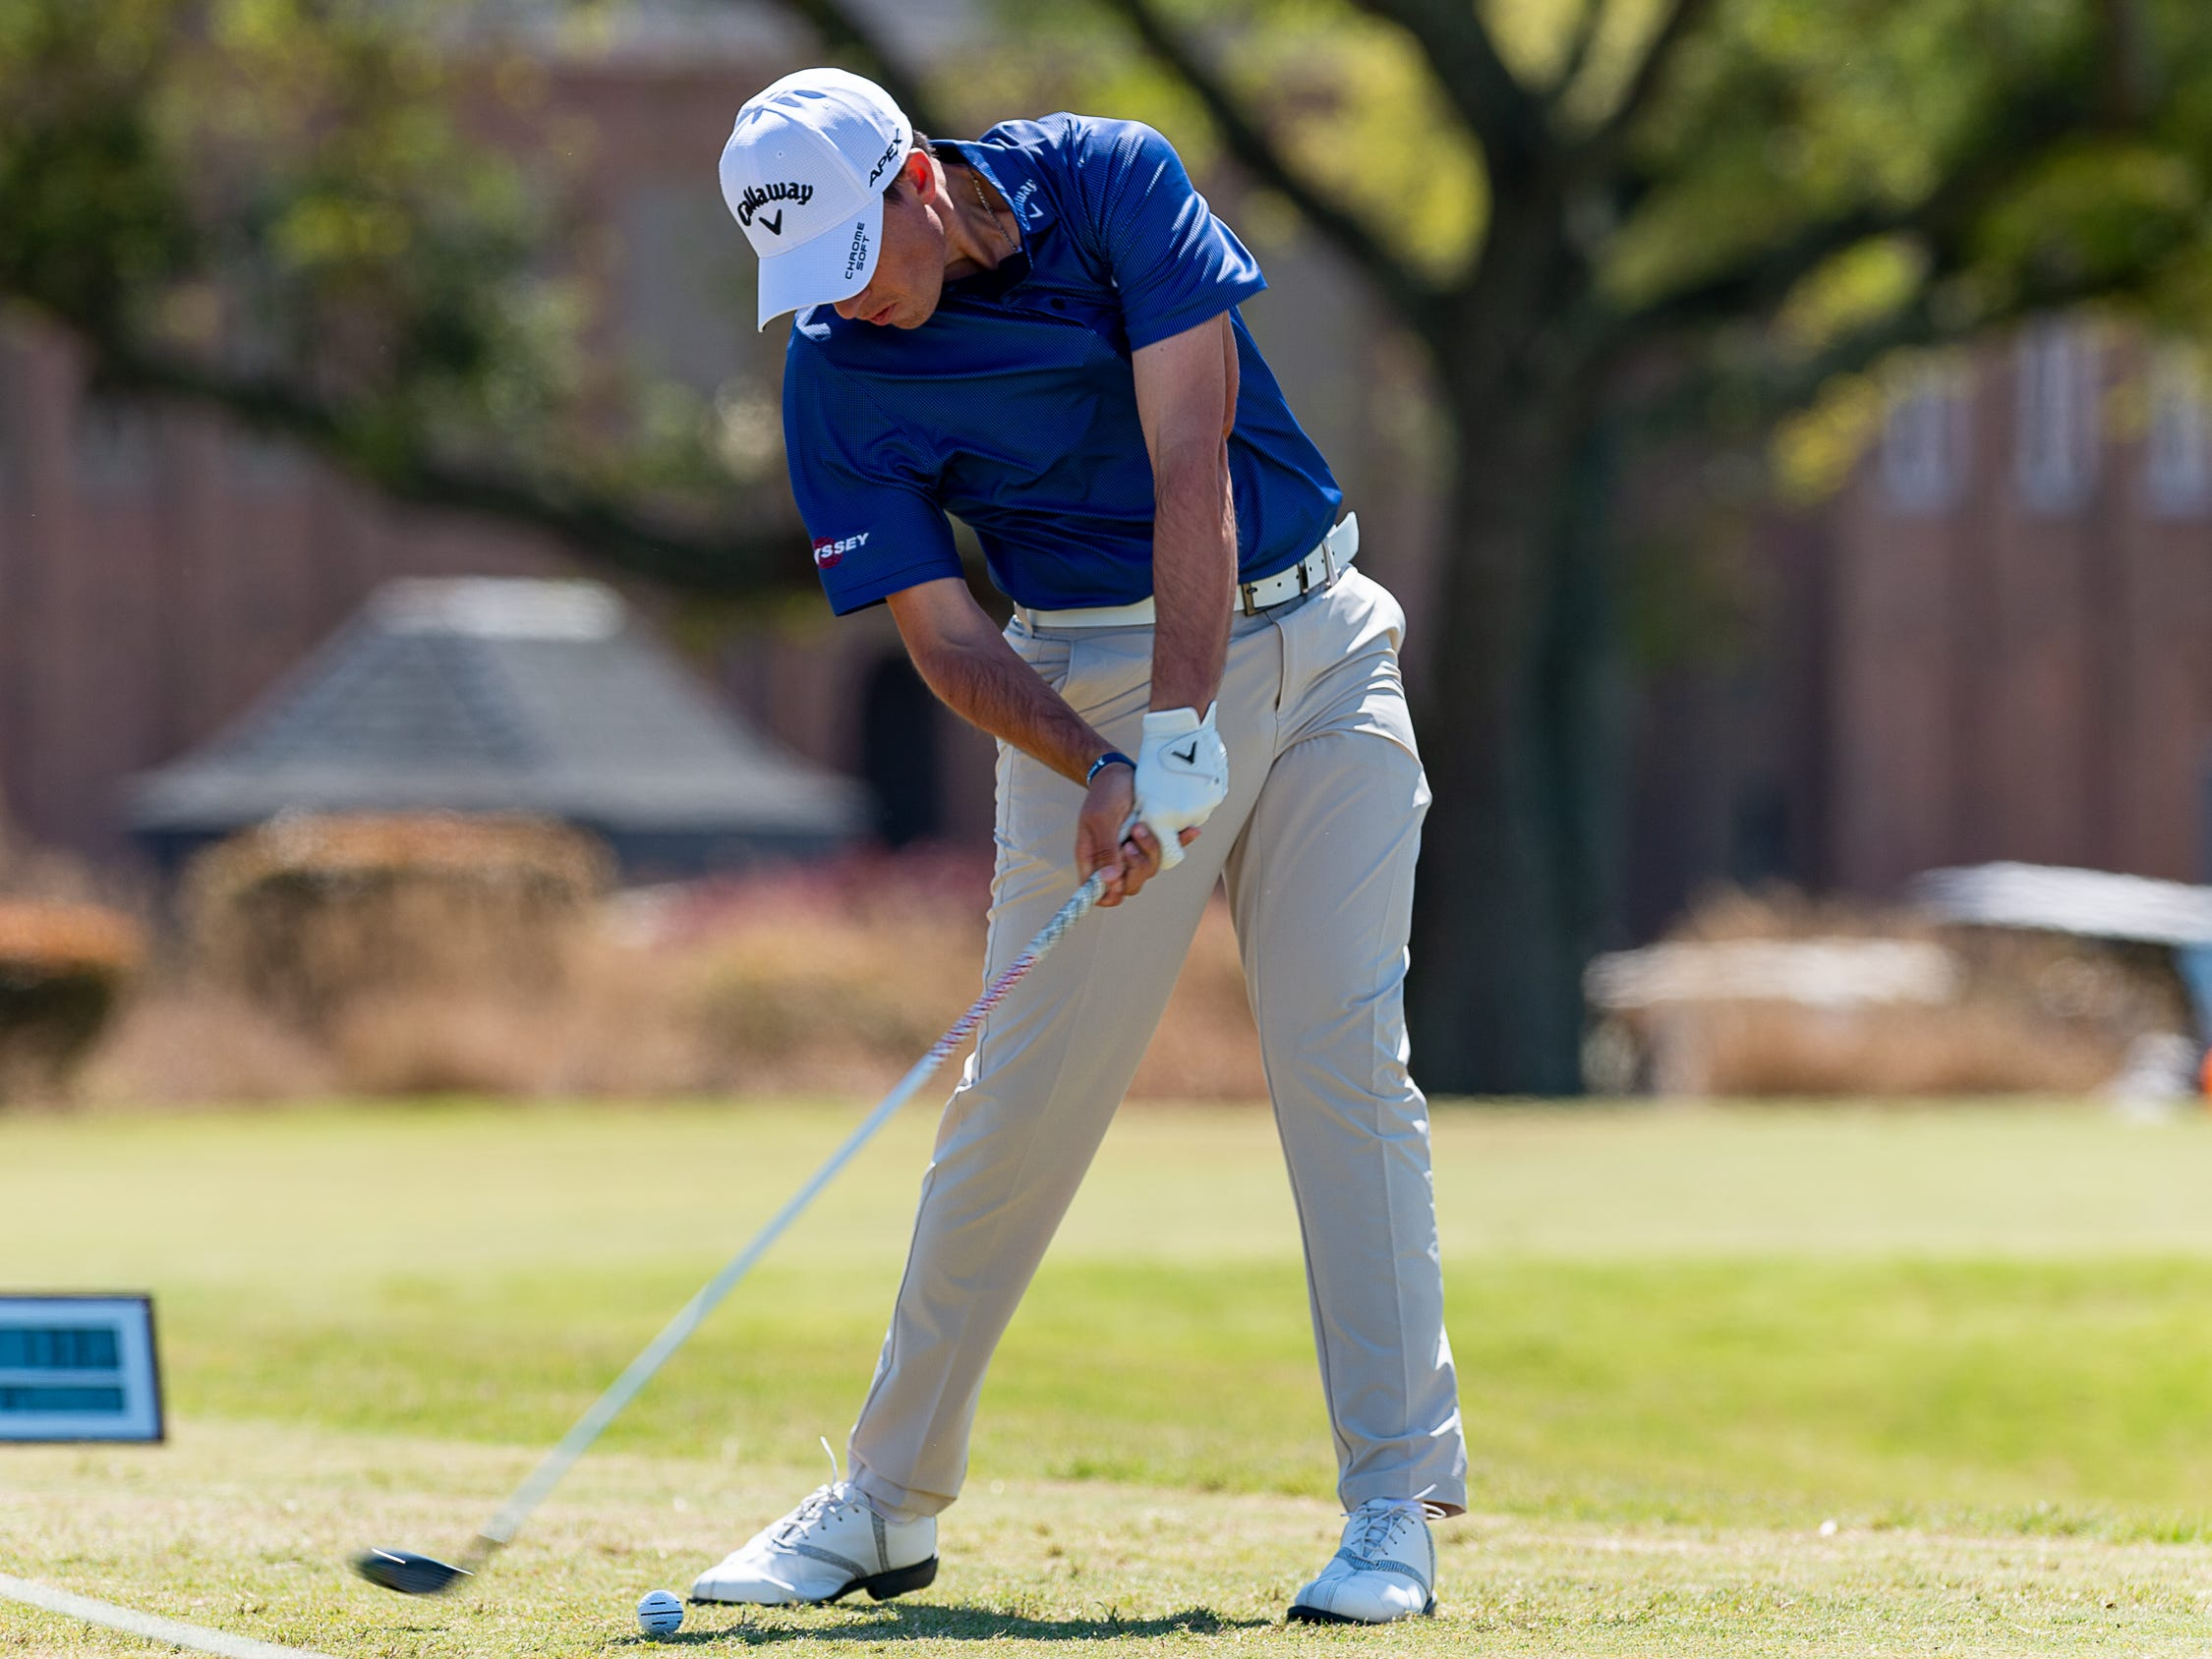 Andres Gallegos on the tee as the The Web.com Tour is in Lafayette for the 2019 Chitimacha Louisiana Open at Le Triomphe. Friday, March 22, 2019.